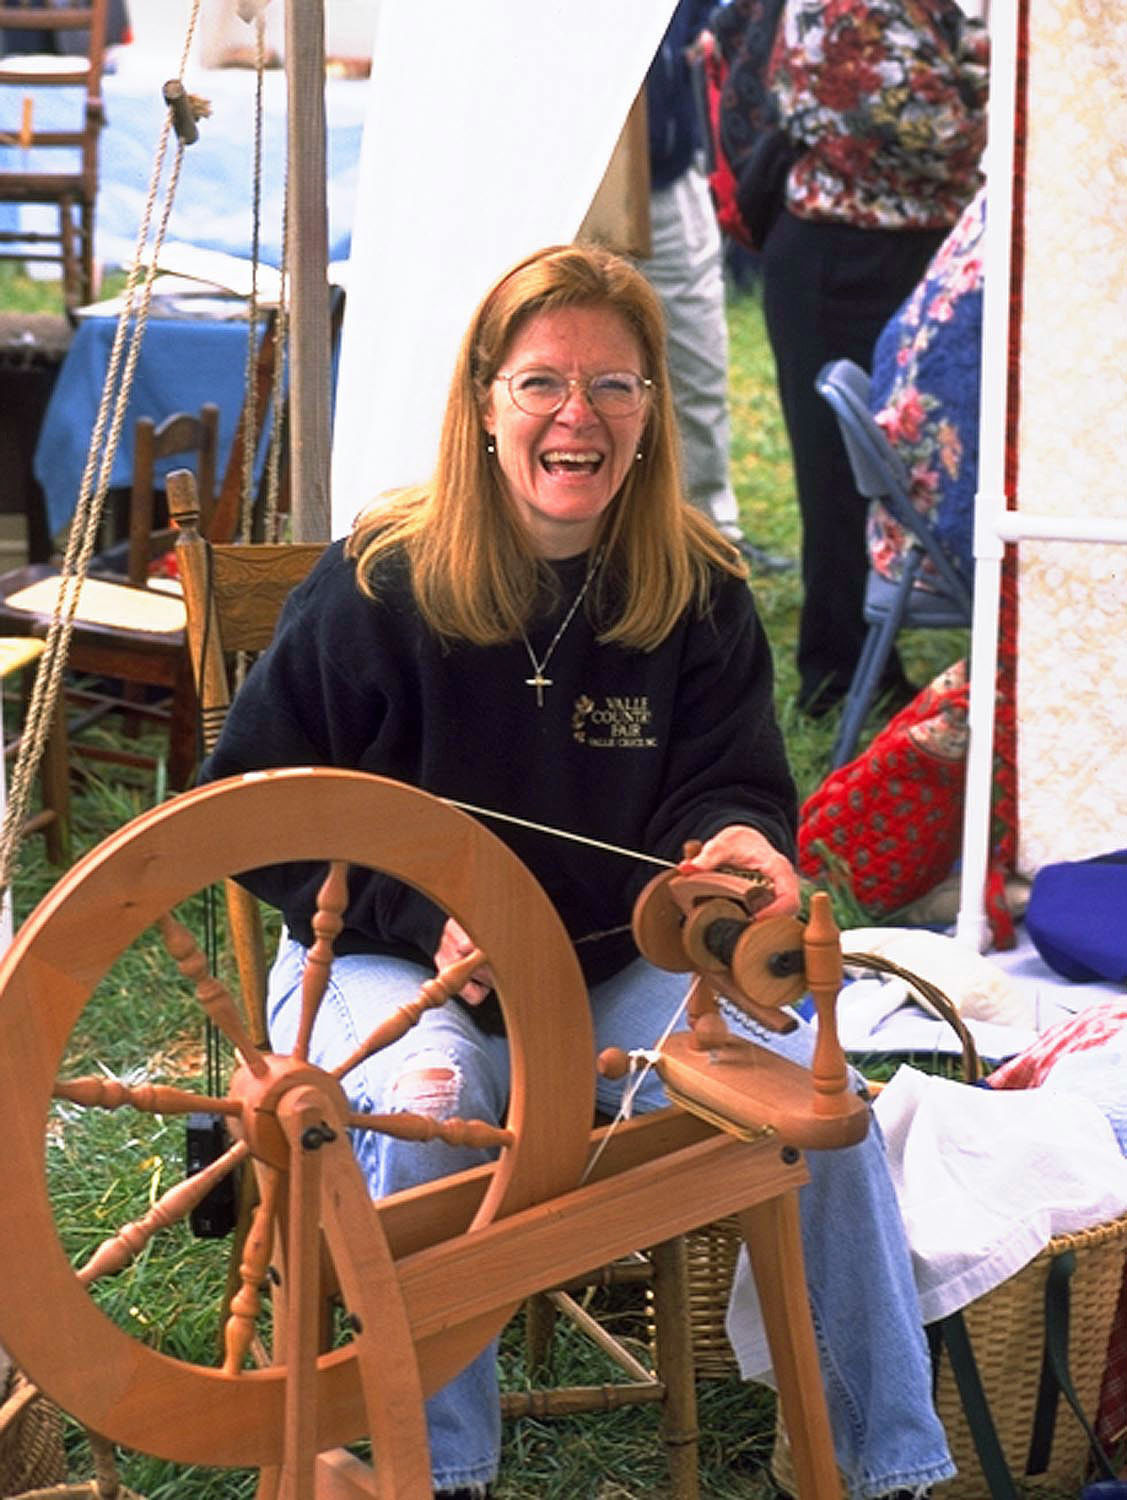 VCF - Cathy Cole Demonstrating Spinning